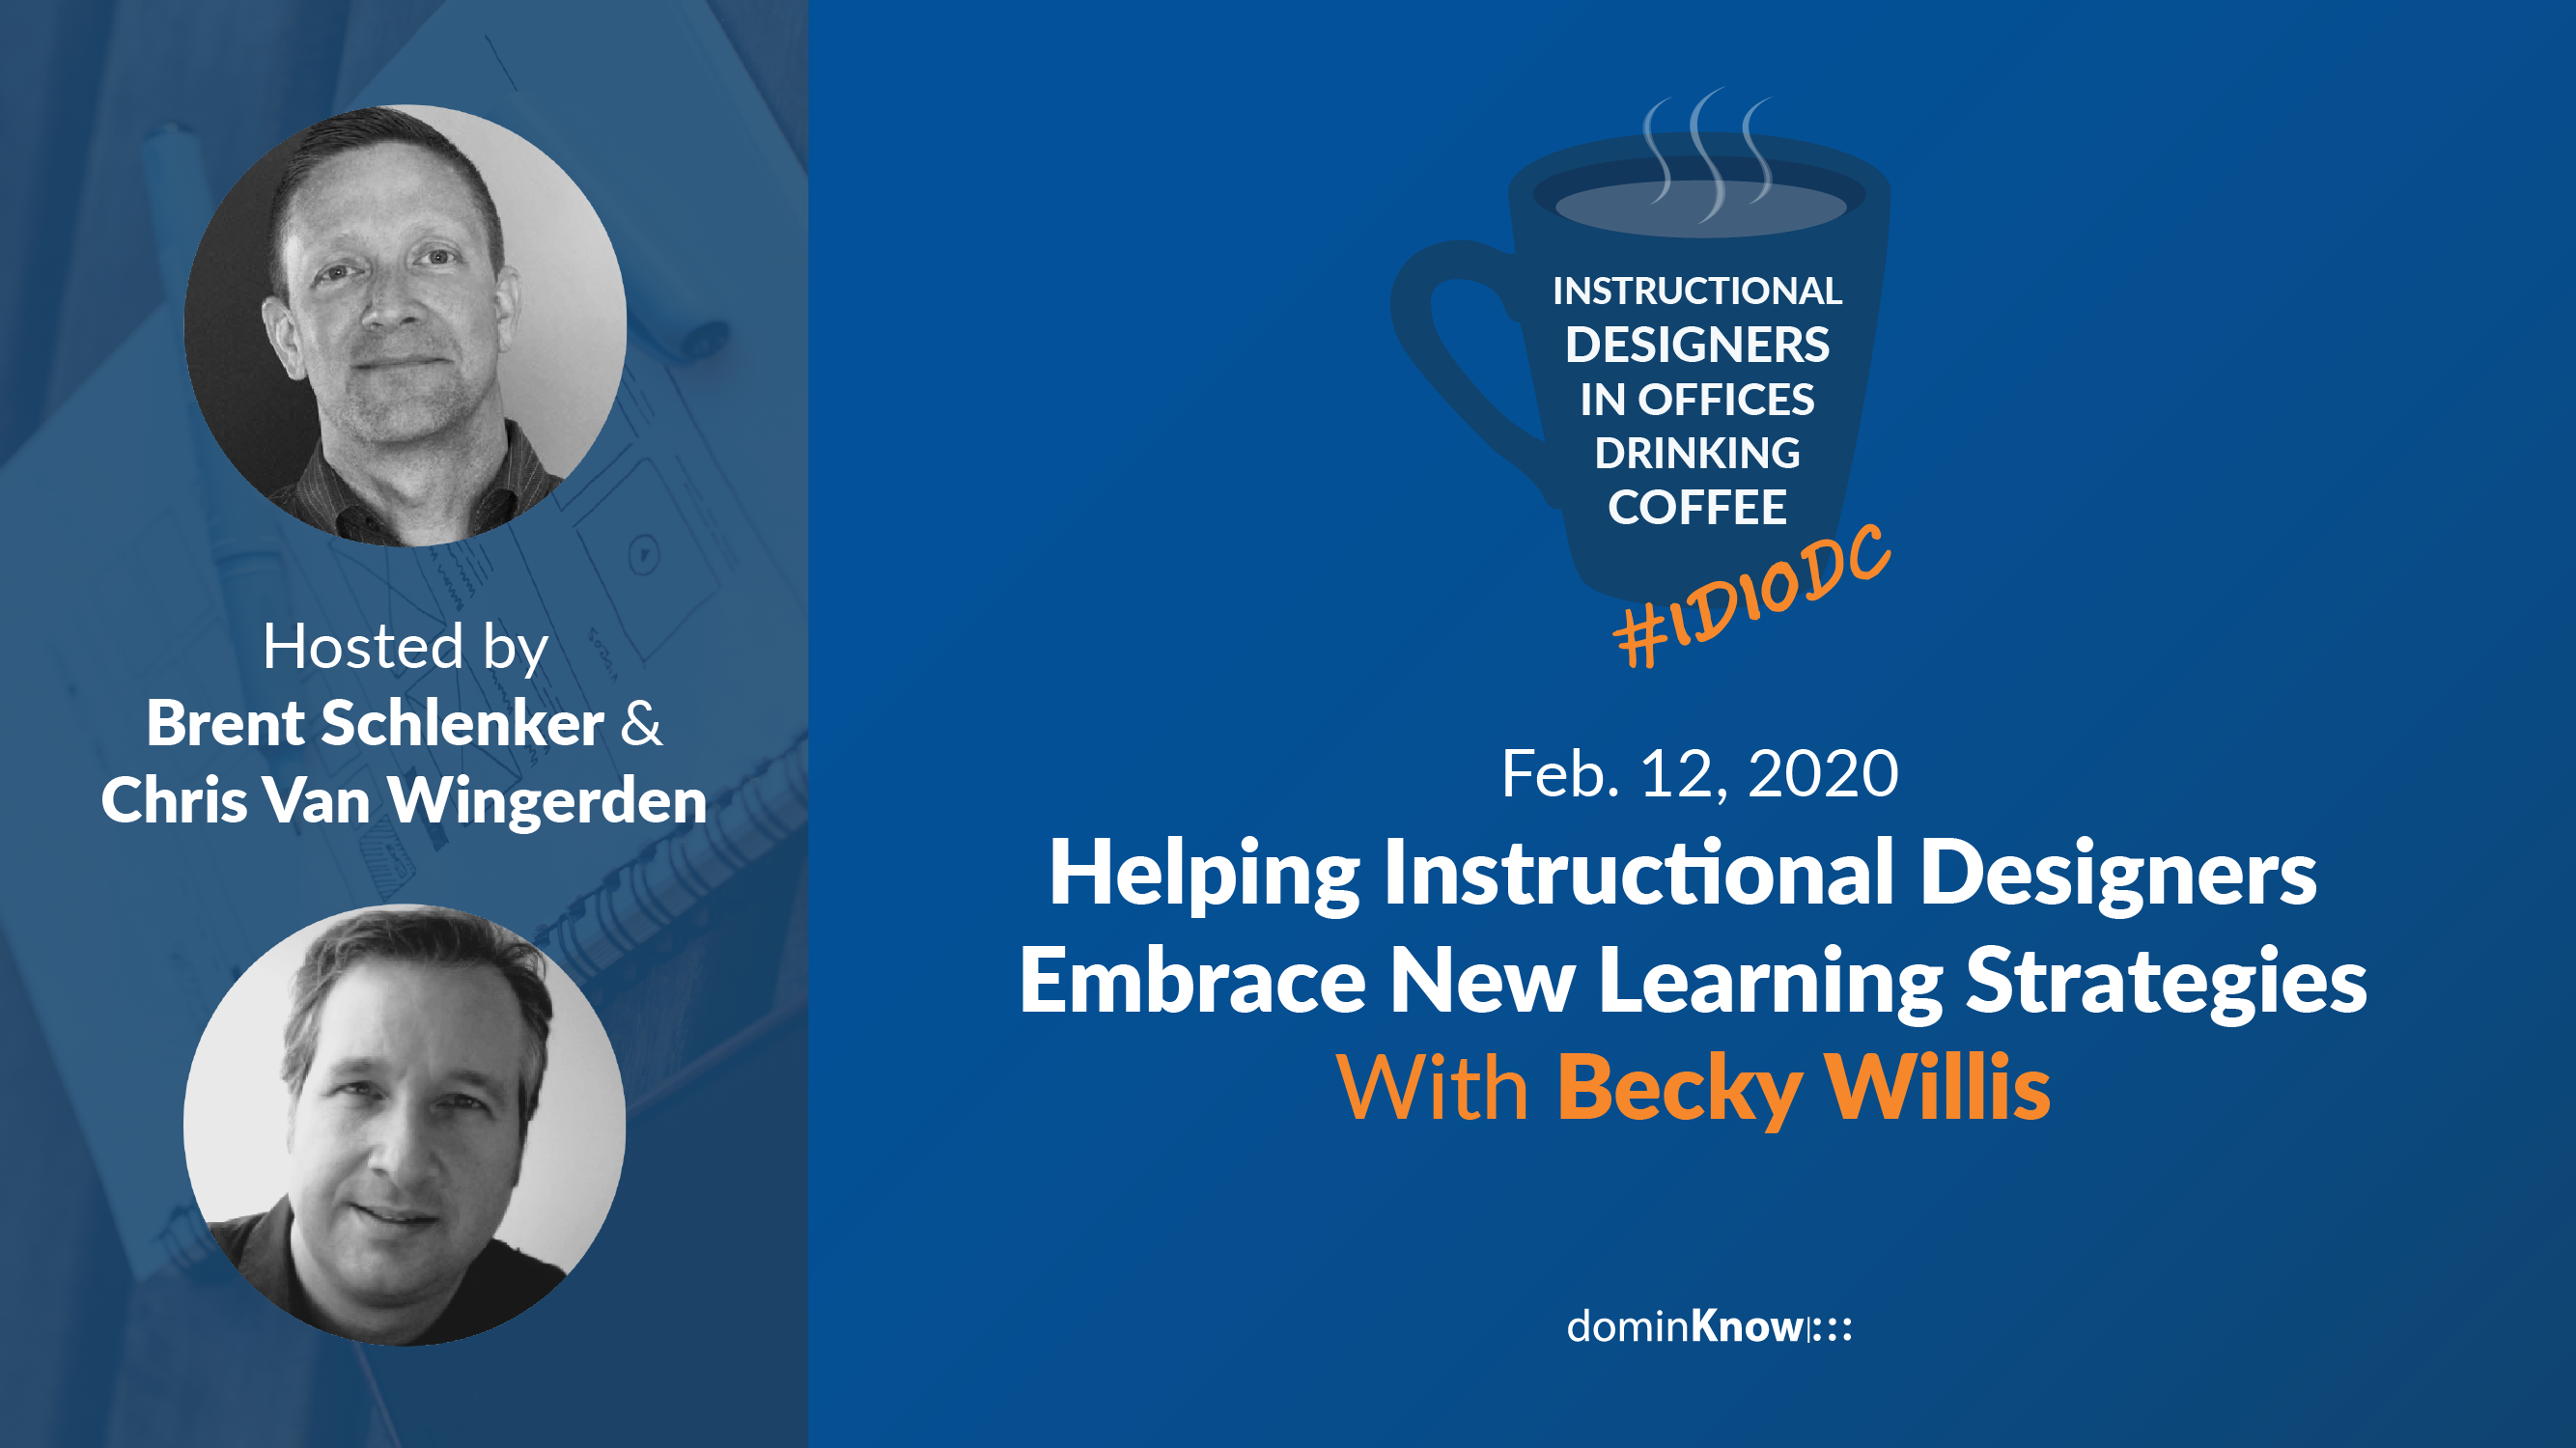 Brent and Chris talk with new special guest Becky Willis for a conversation about embracing change in L&D